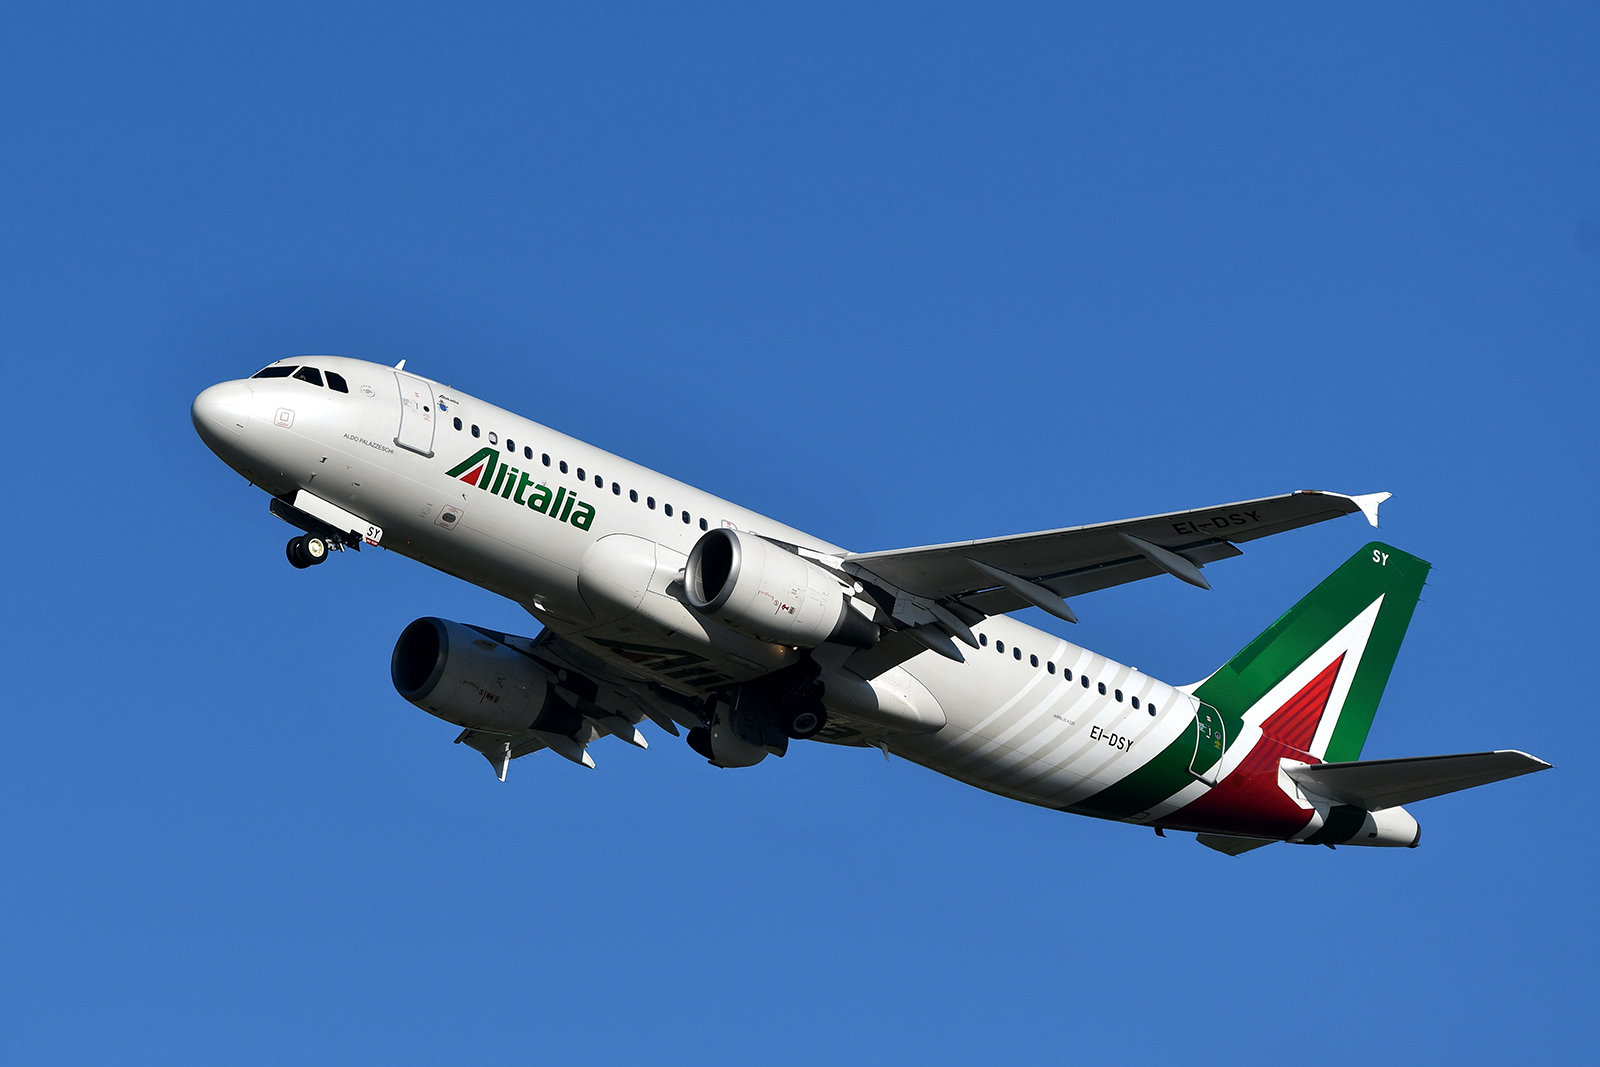 An Alitalia Airbus A320 takes off from Rome's Fiumicino airport on May 31, 2019.